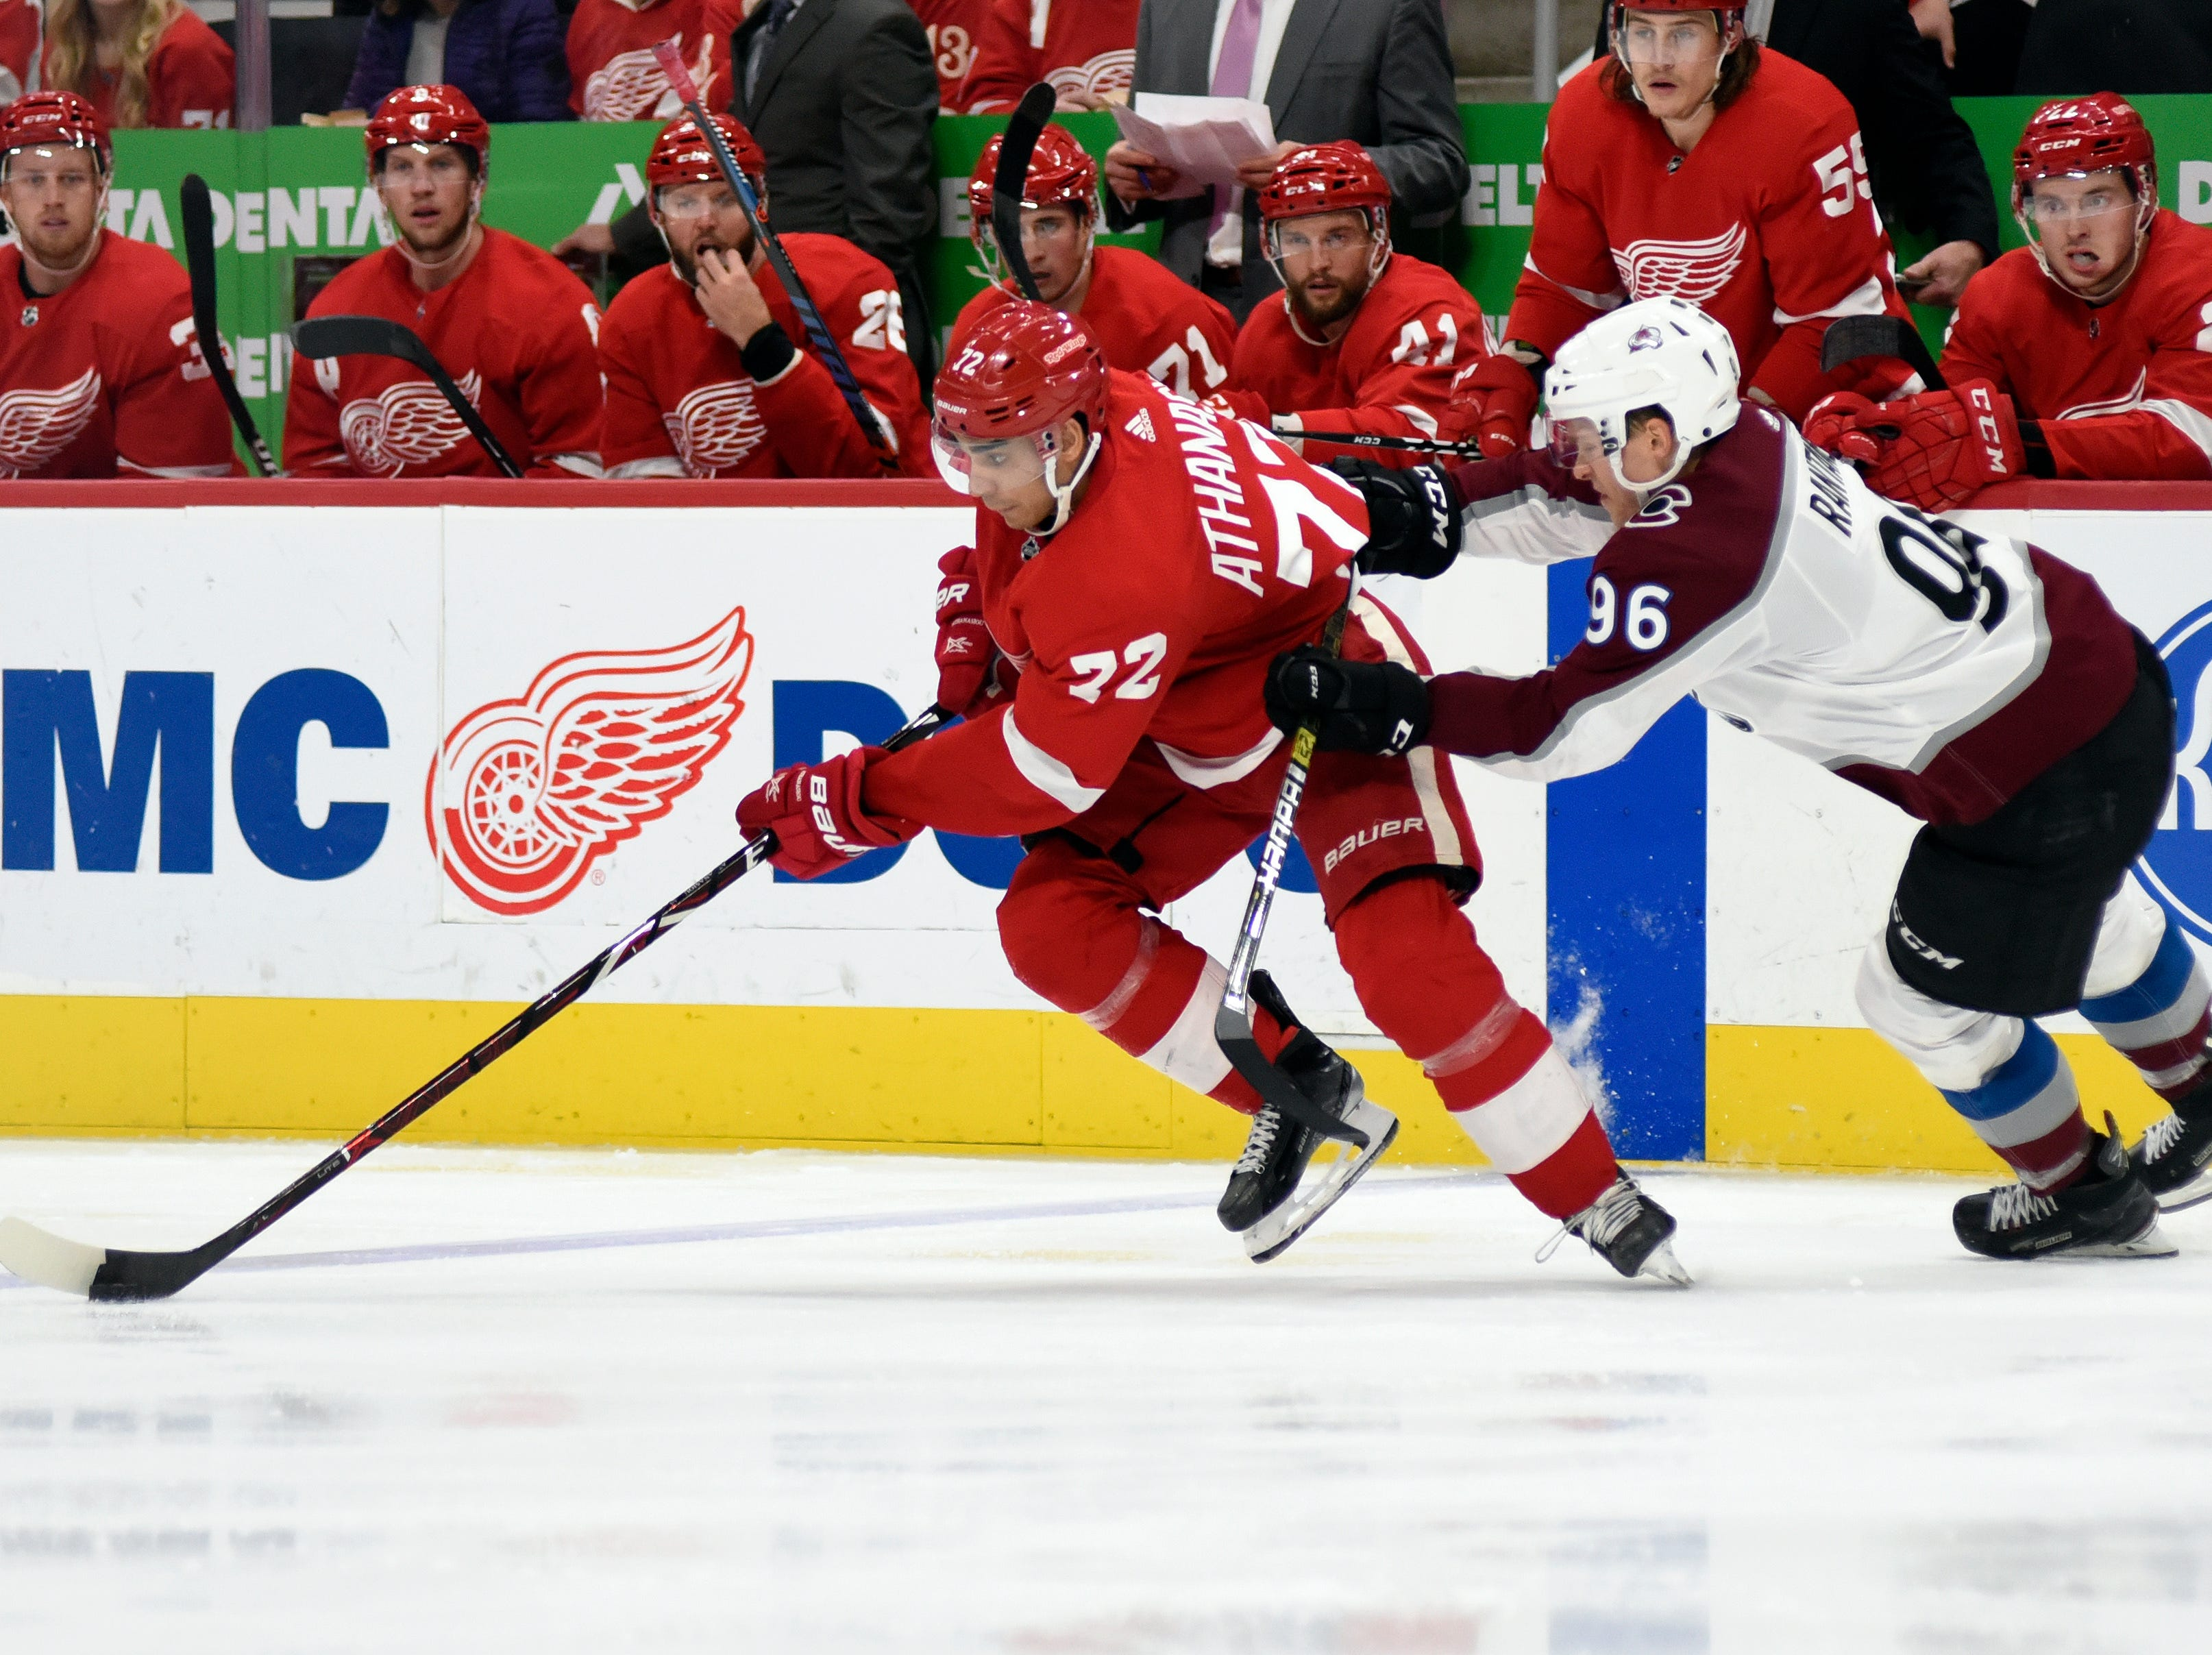 Detroit Red Wings center Andreas Athanasiou, left, moves the puck away from Colorado Avalanche right wing Mikko Rantanen of Finland during the second period.